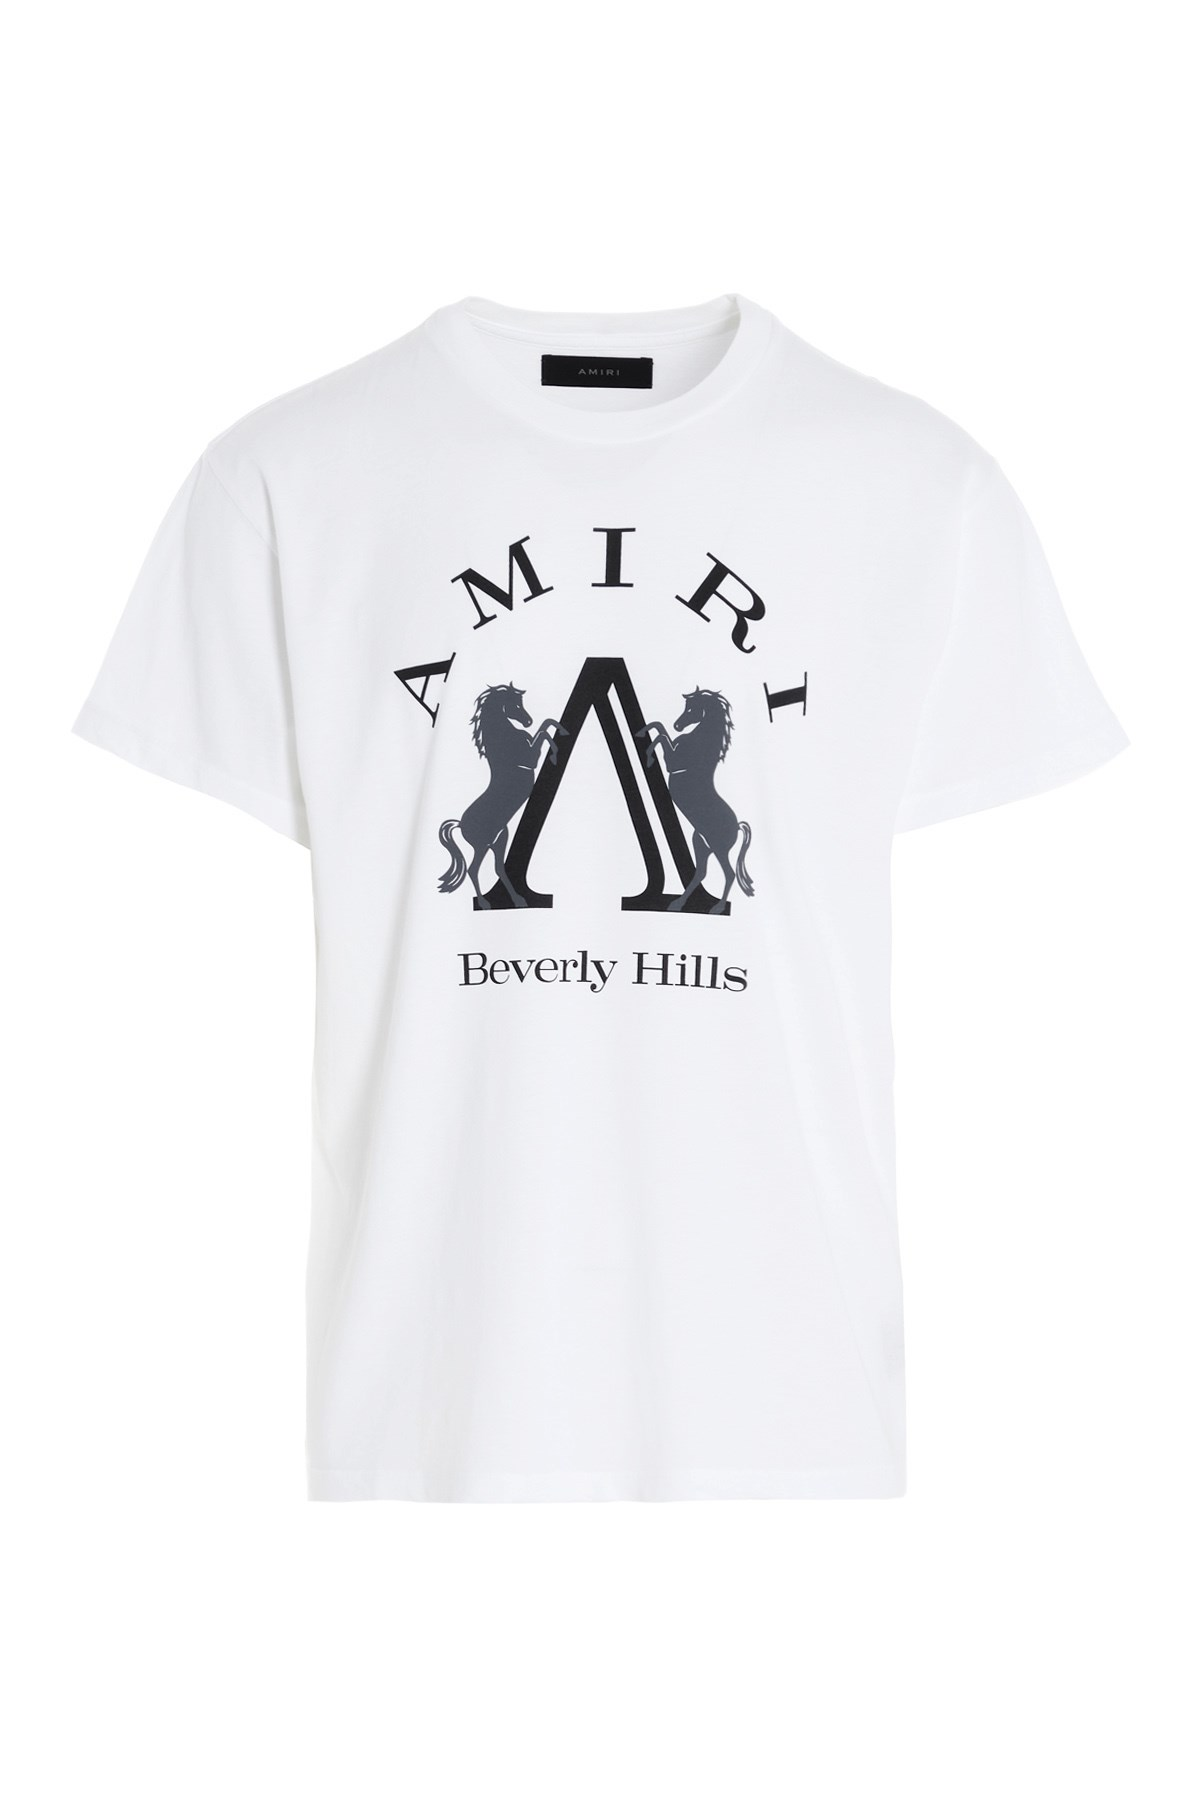 Amiri Beverly Hills Amiri T Shirt Available On Www Julian Fashion Com 130623 Kr